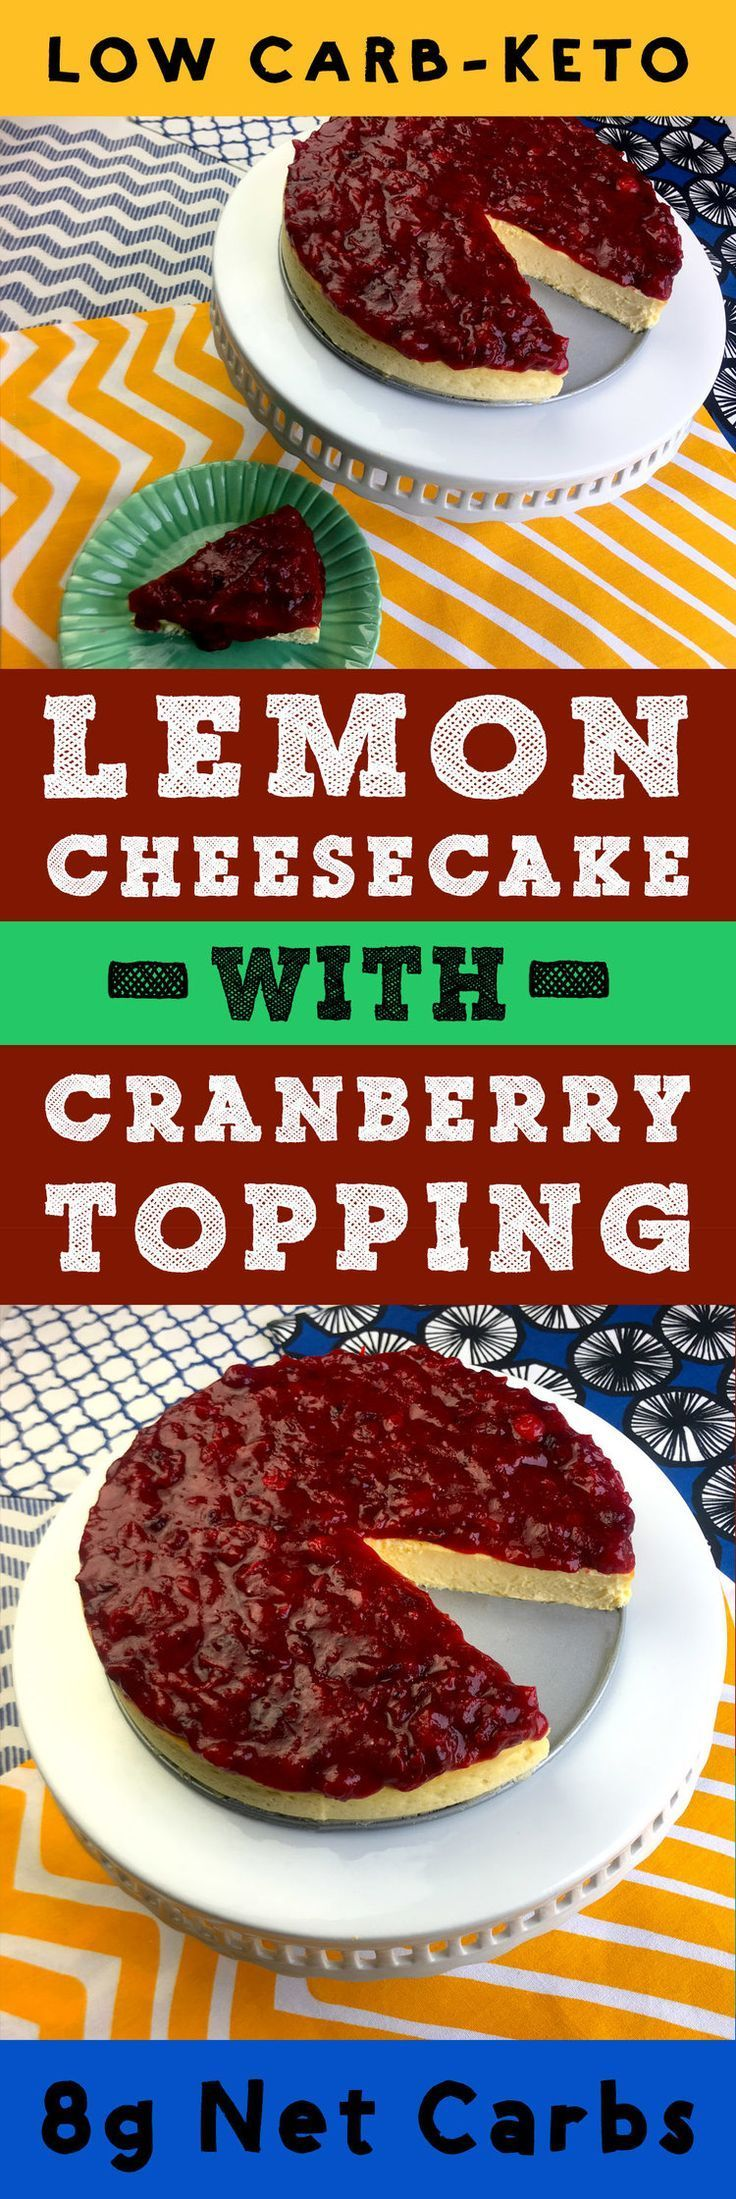 This recipe for Low Carb Lemon Ricotta Cheesecake with Cranberry Topping is Keto, Paleo, THM, Atkins, Banting, LCHF, Sugar Free and Gluten Free  It's also tasty as all get out. #Keto #paleo #banting #diet #GlutenFree